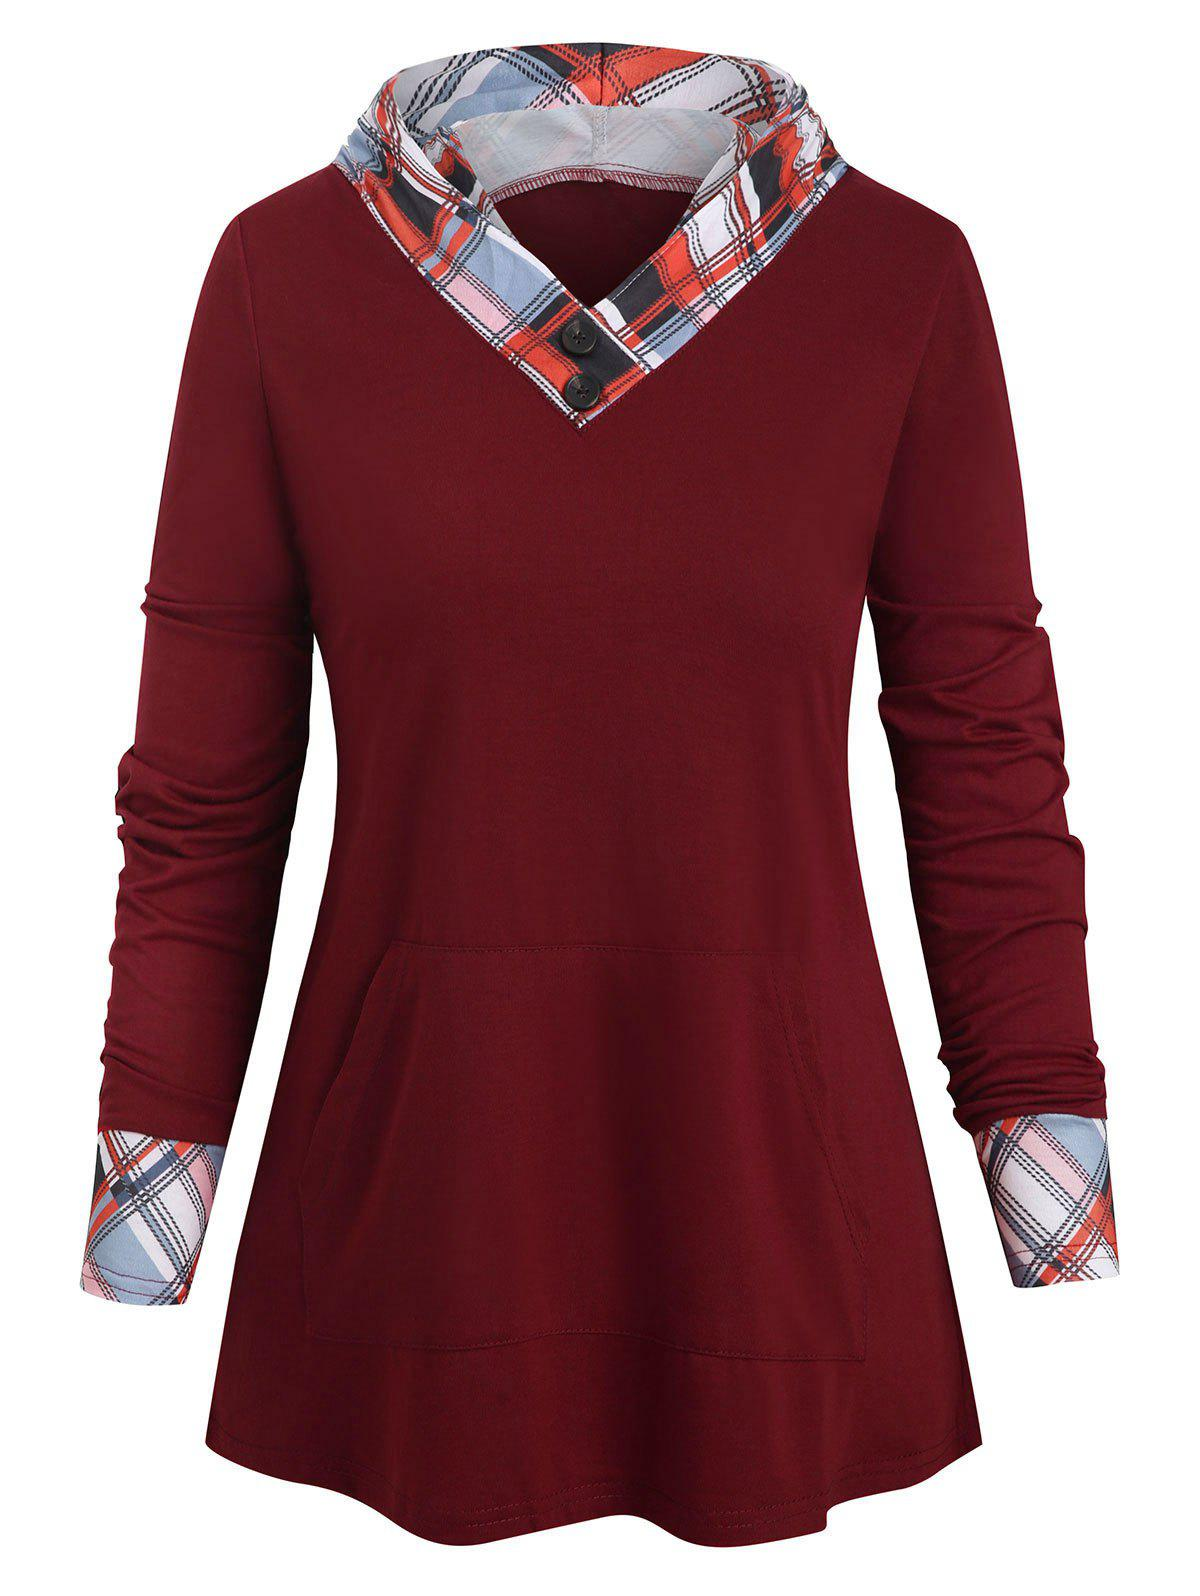 New Checked Panel Hooded Long Sleeve Top